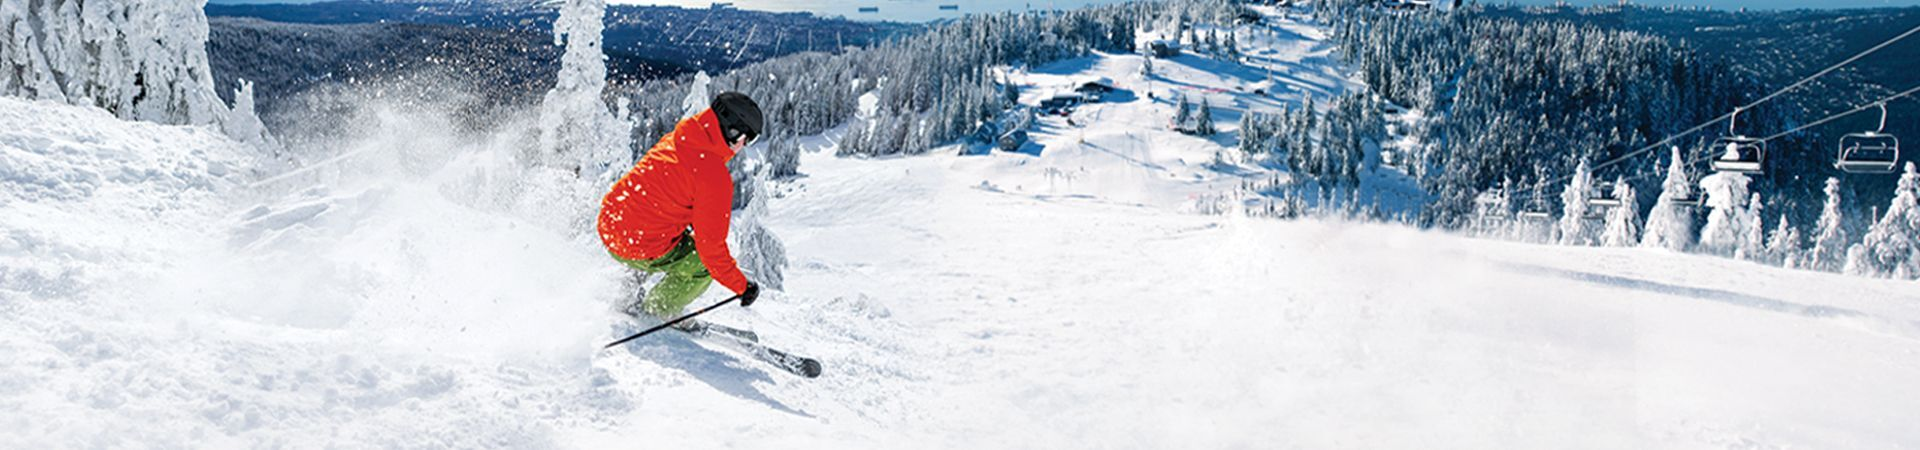 Y2PLAY IS ON SALE NOW - SAVE UP TO 80% - UNLIMITED SKIING & RIDING NOW AND ALL NEXT SEASON